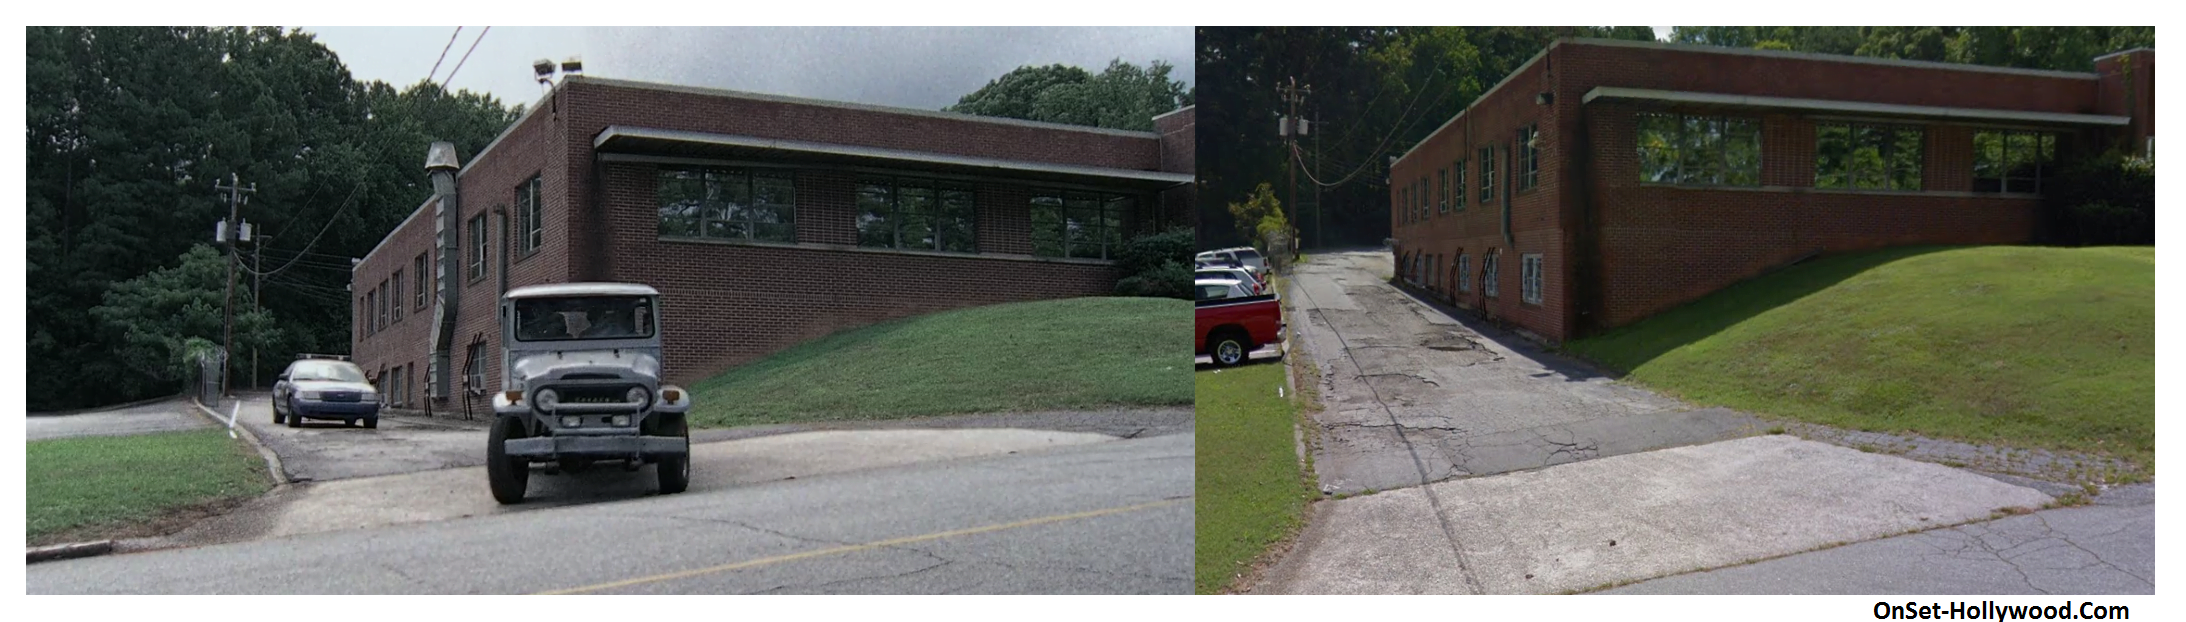 walking-dead-season1-episode1-filming-locations-police-station